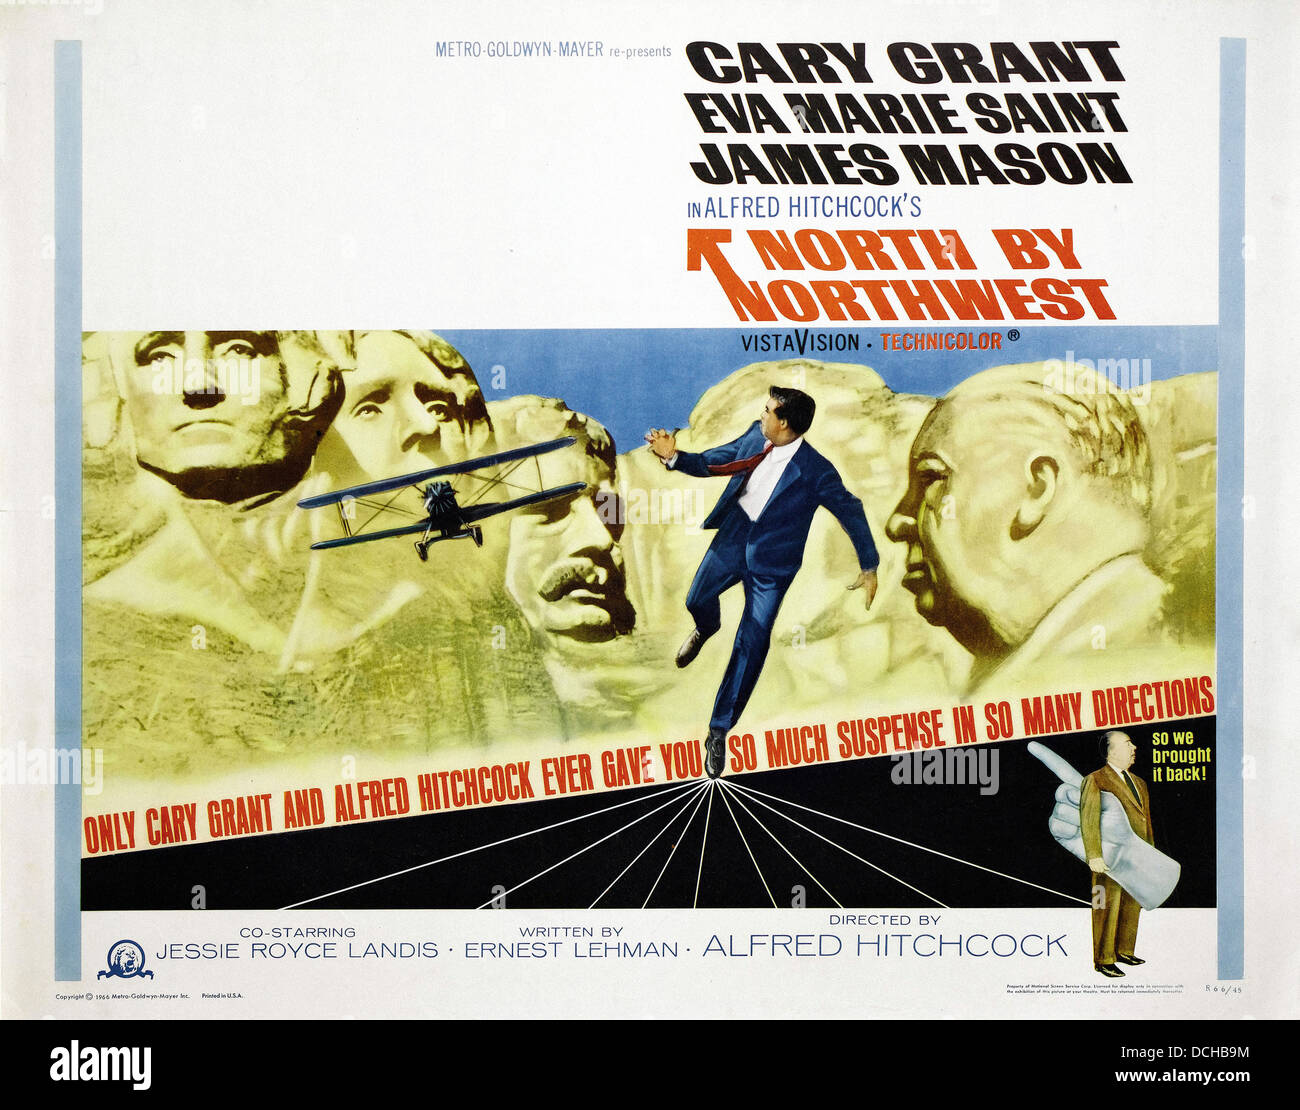 North by Northwest () ADs. START STREAMING DOWNLOAD HD Share Tweet Pin it Google+ Email WhatsApp. ADs. Watch online full movie: North by Northwest () for free. A hapless New York advertising executive is mistaken for a government agent by a group of foreign spies, and is pursued across the country while he looks for a way to survive.